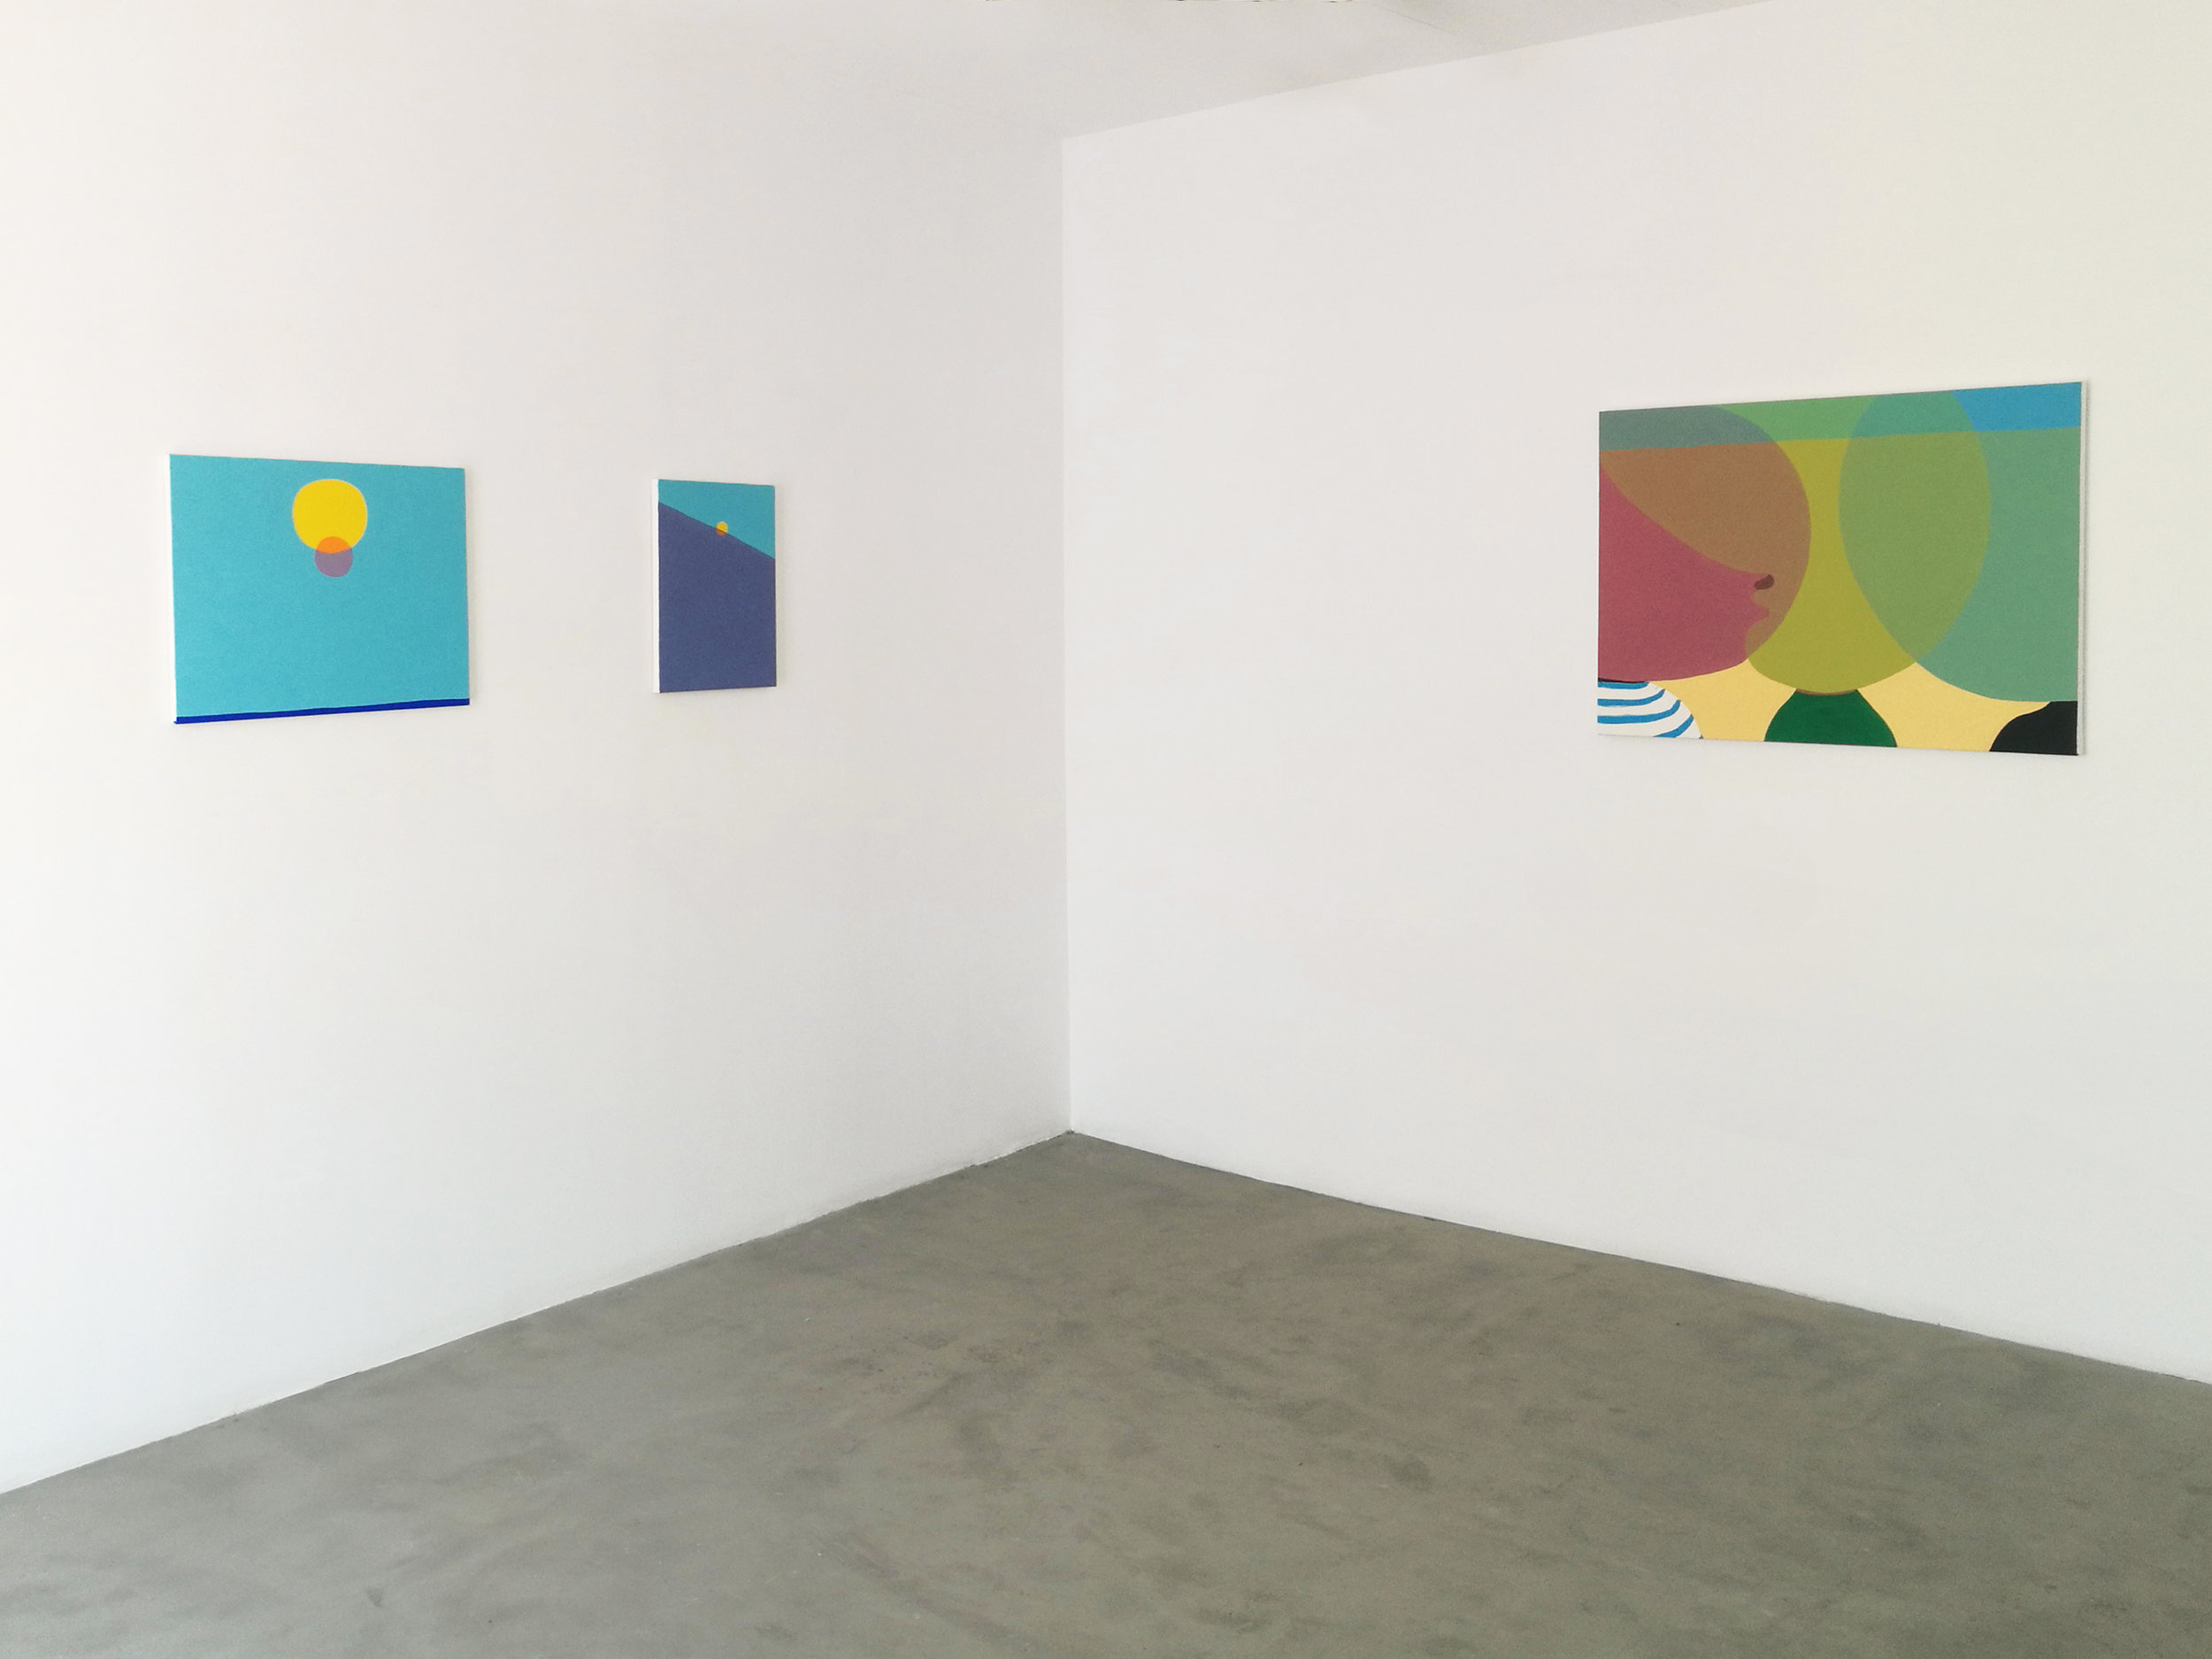 Peter McDonald_This, that and the other_Moon, Sun, Sun 2, Friends_2018 copy copy.jpg